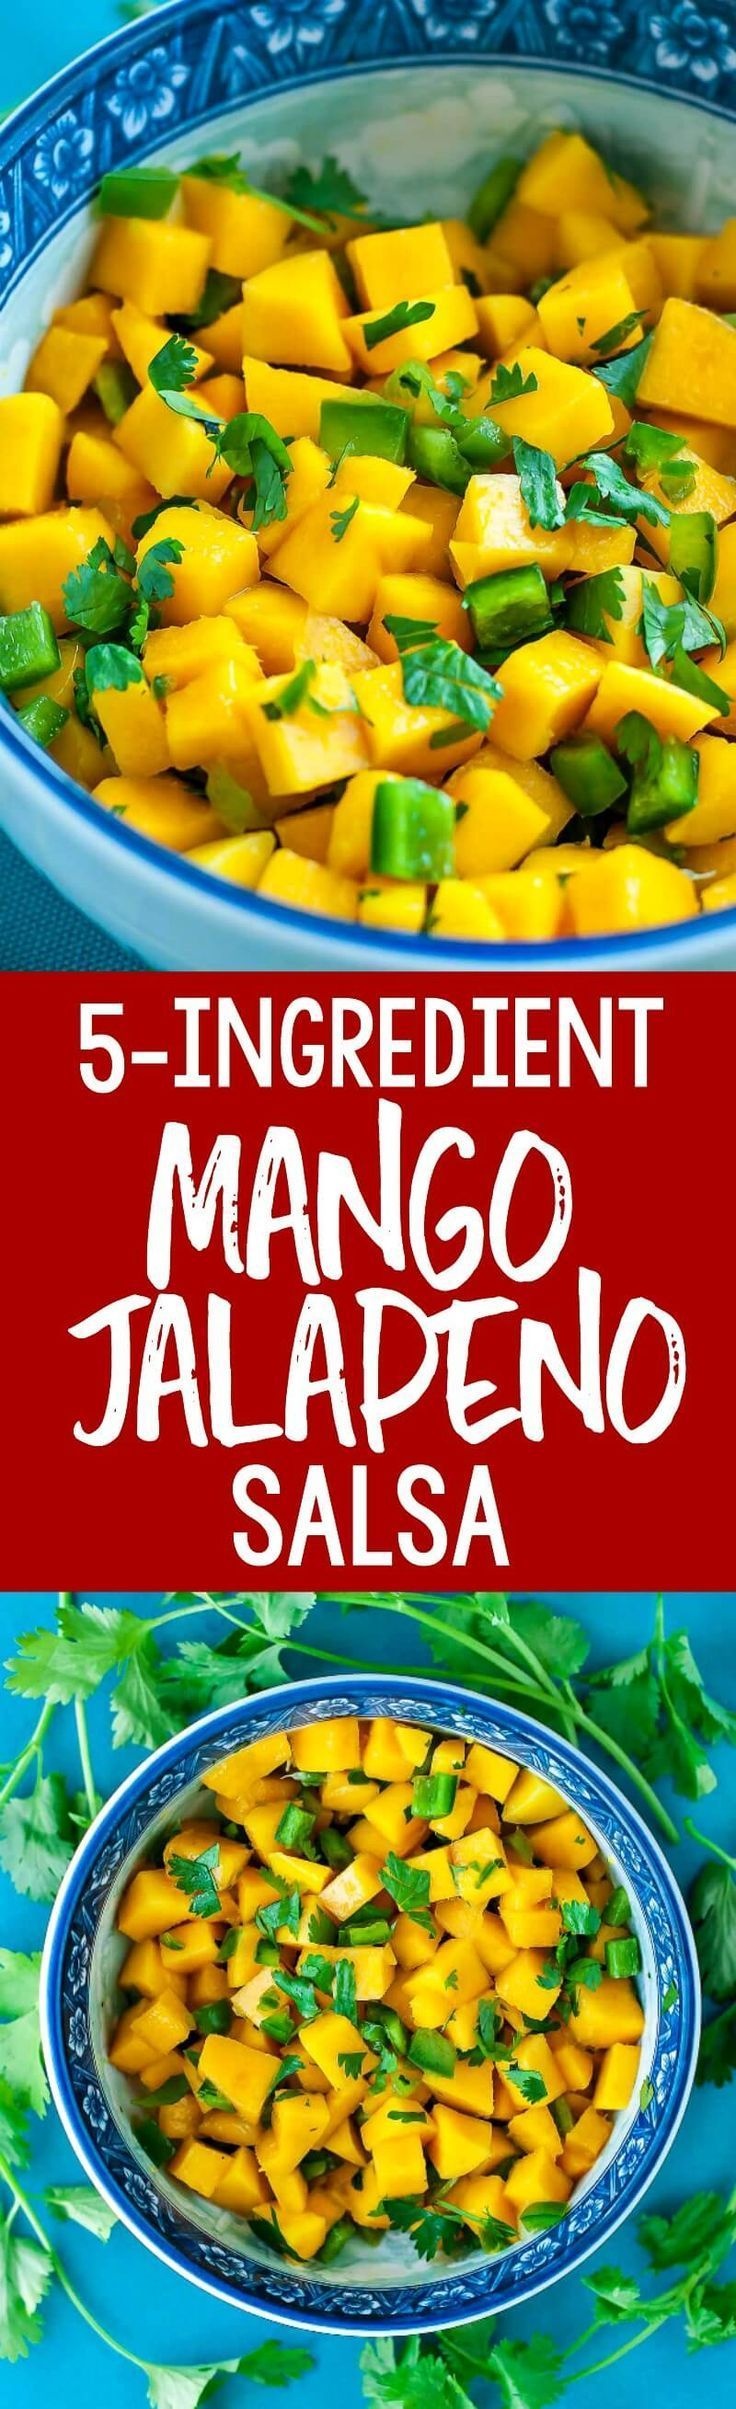 This Easy 5-Ingredient Mango Jalapeño Salsa is a crazy delicious way to amp up the flavor of your favorite foods. Try it on top of fish or chicken, salads or tacos, or dive in with some crunchy tortilla chips as a tasty snack!